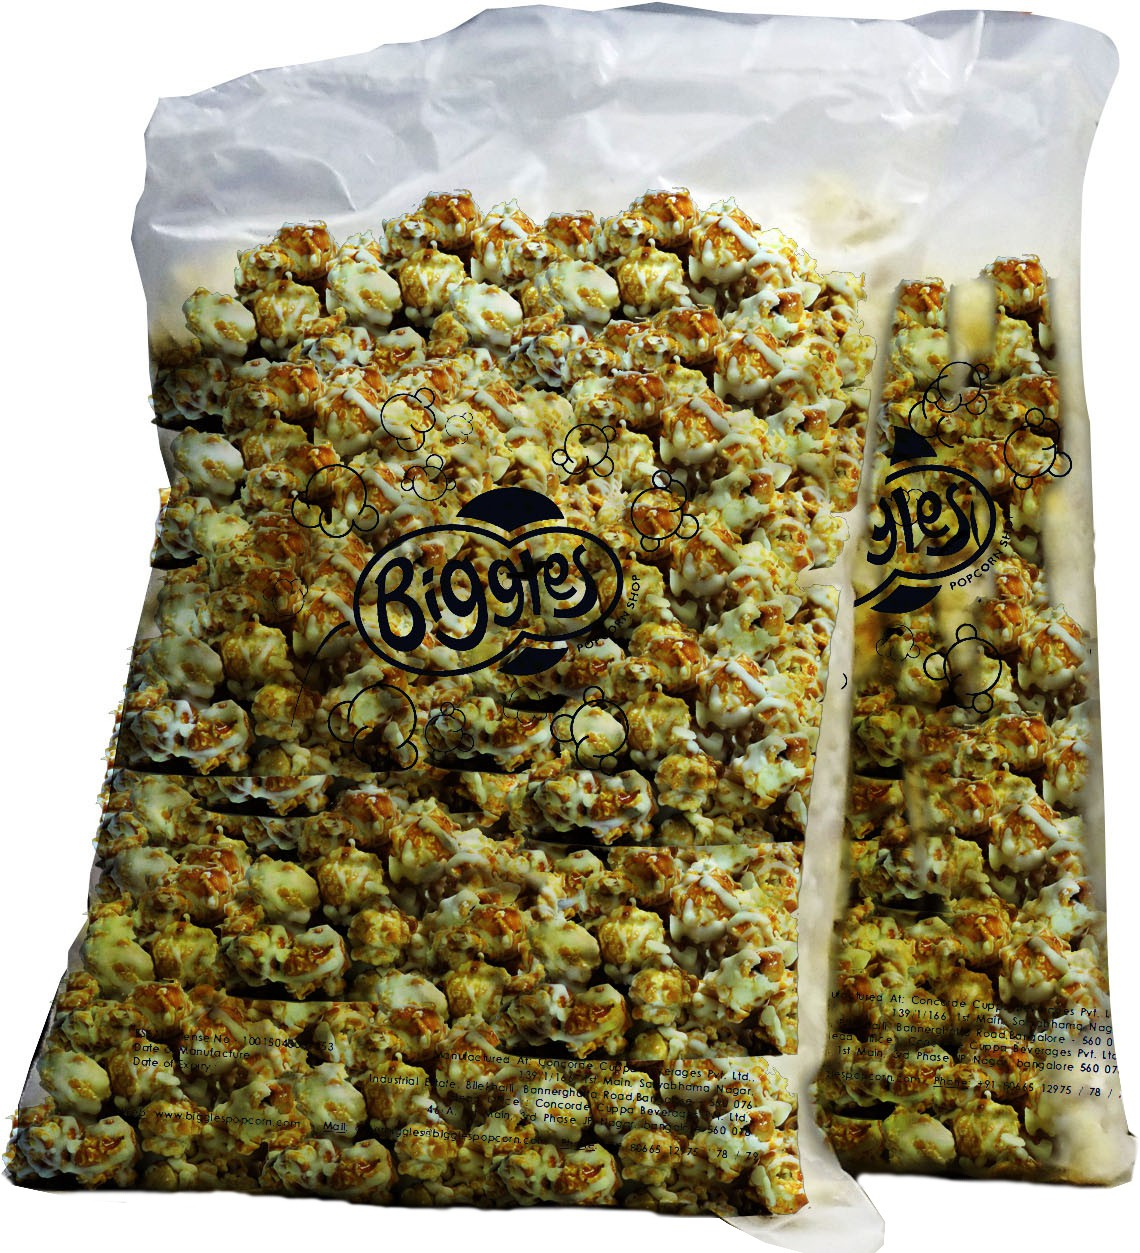 Biggles Dark and White Chocolate Bulk Pack Popcorn